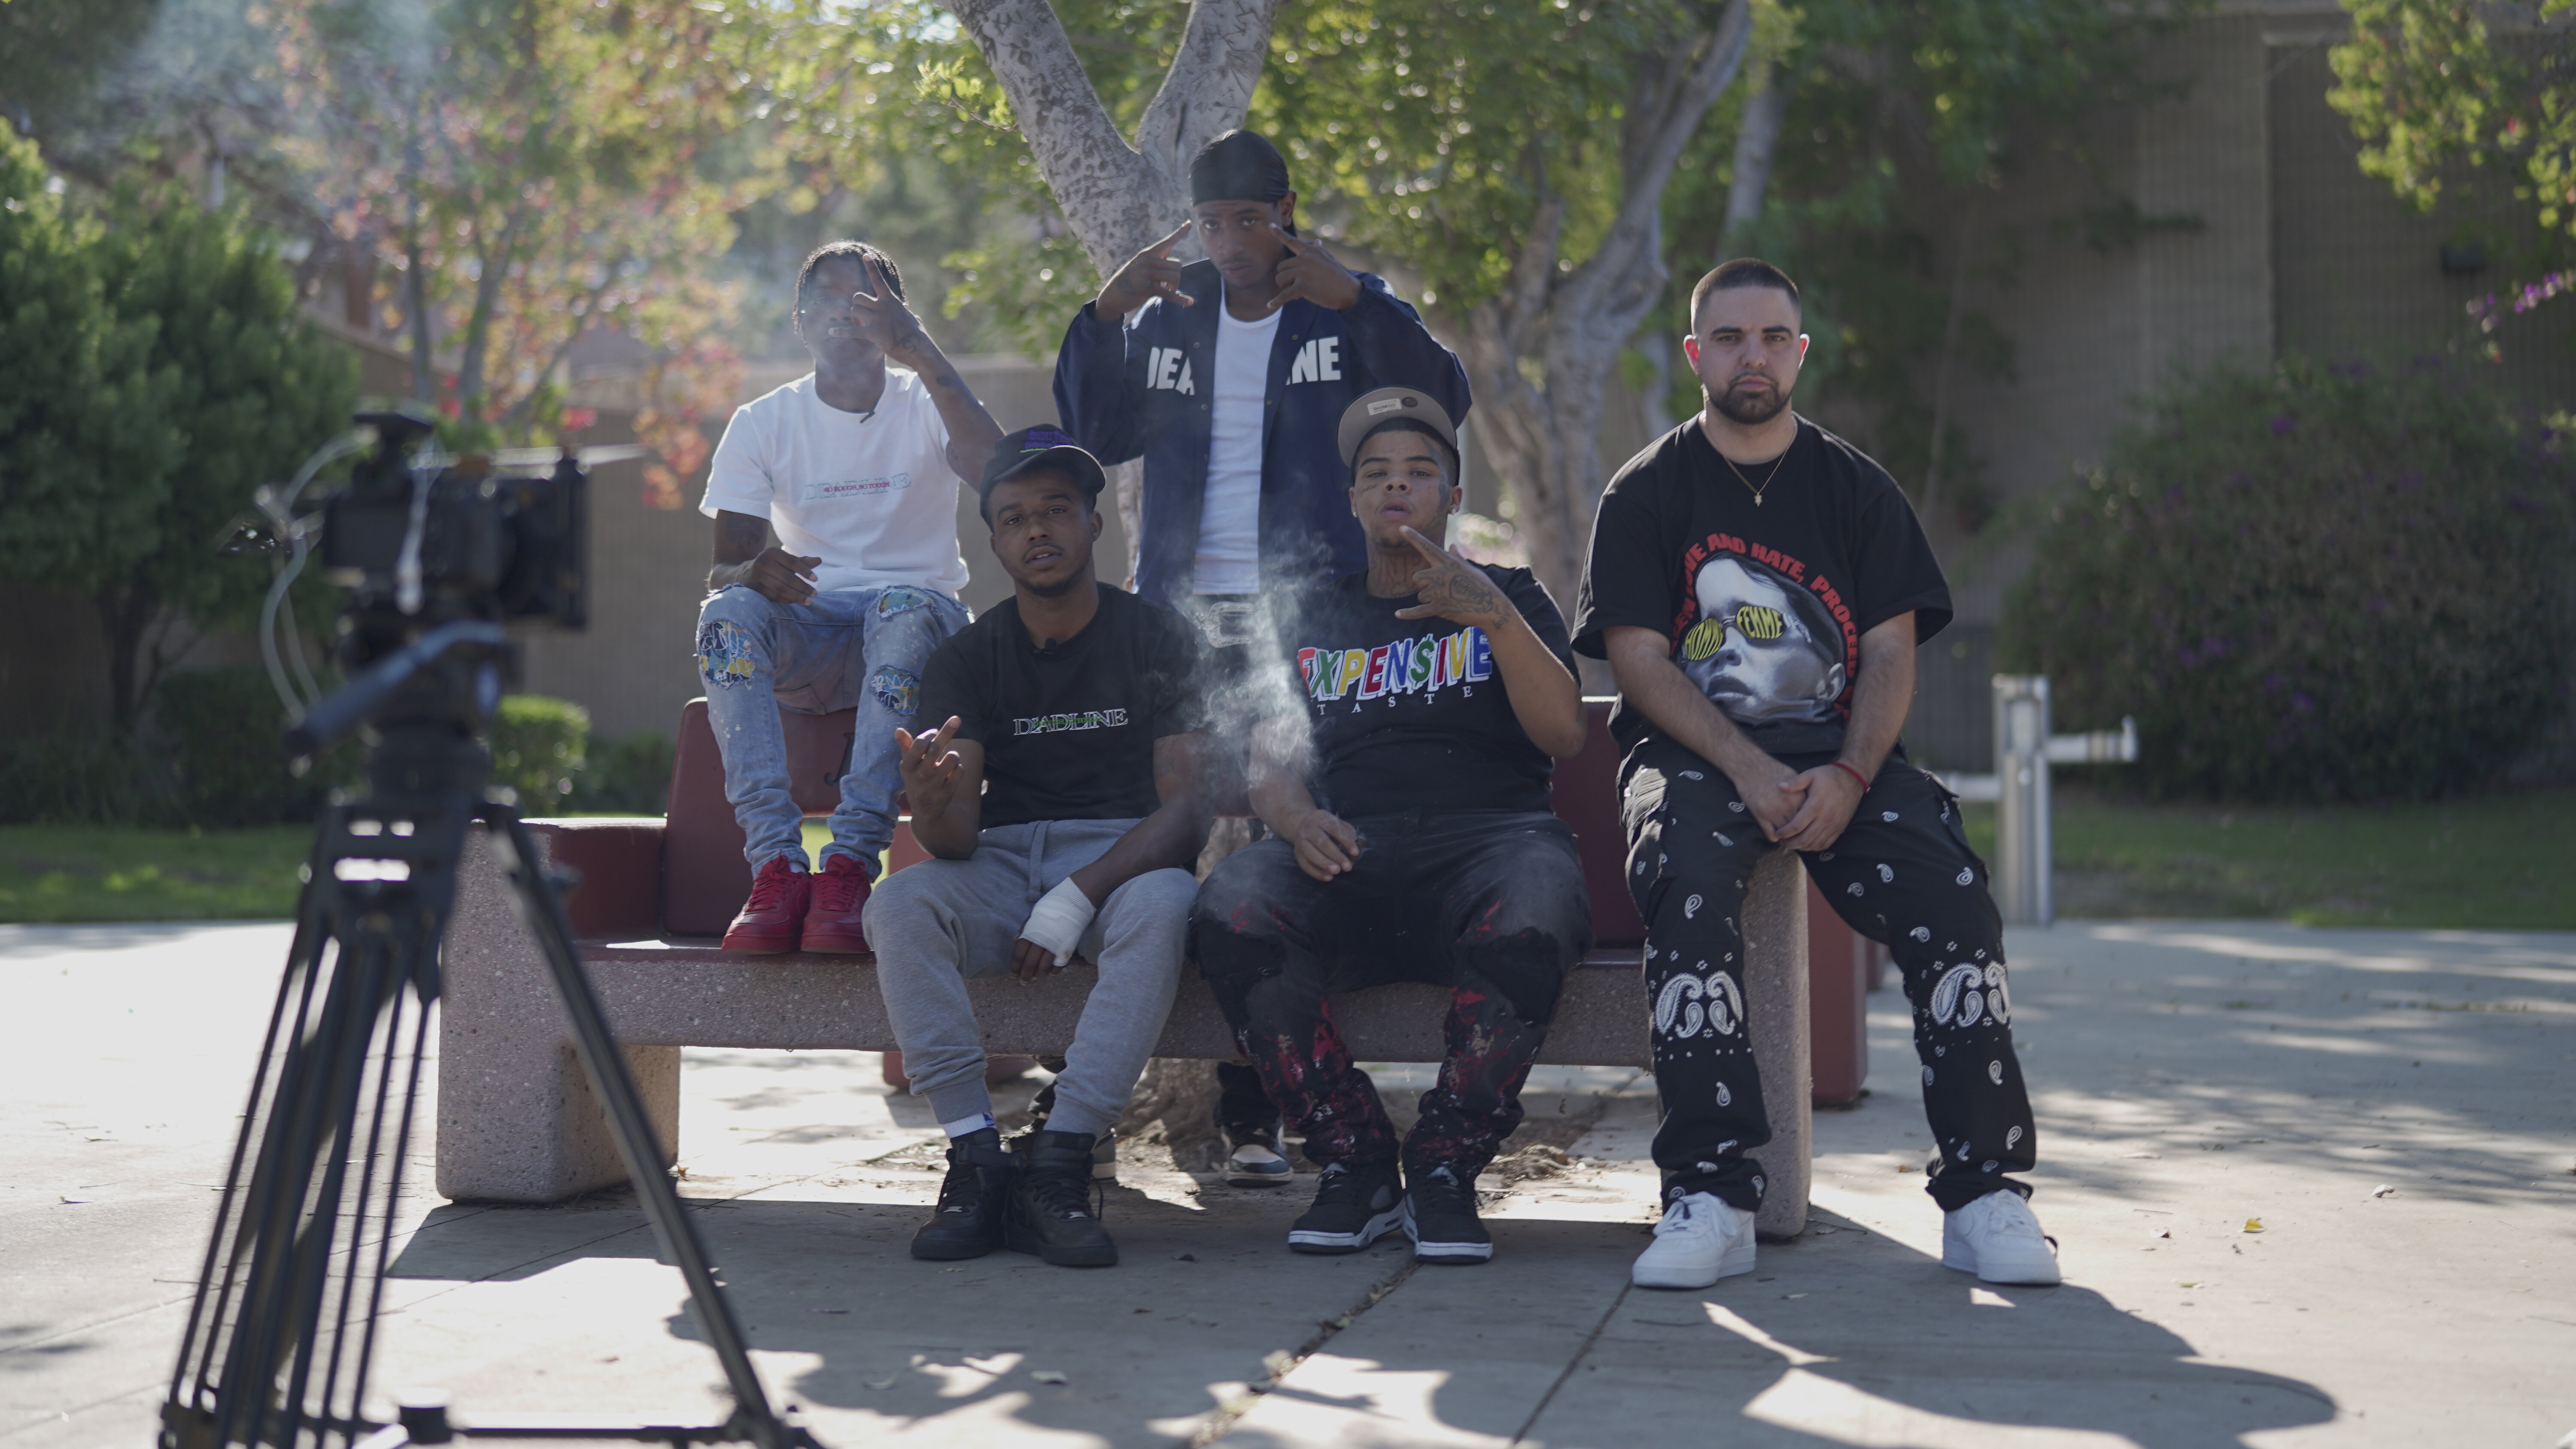 Baby Stone Gorillas Interview: Growing Up In The Jungles, How They Began Rapping, Going Viral + More W/ Rosecrans Vic